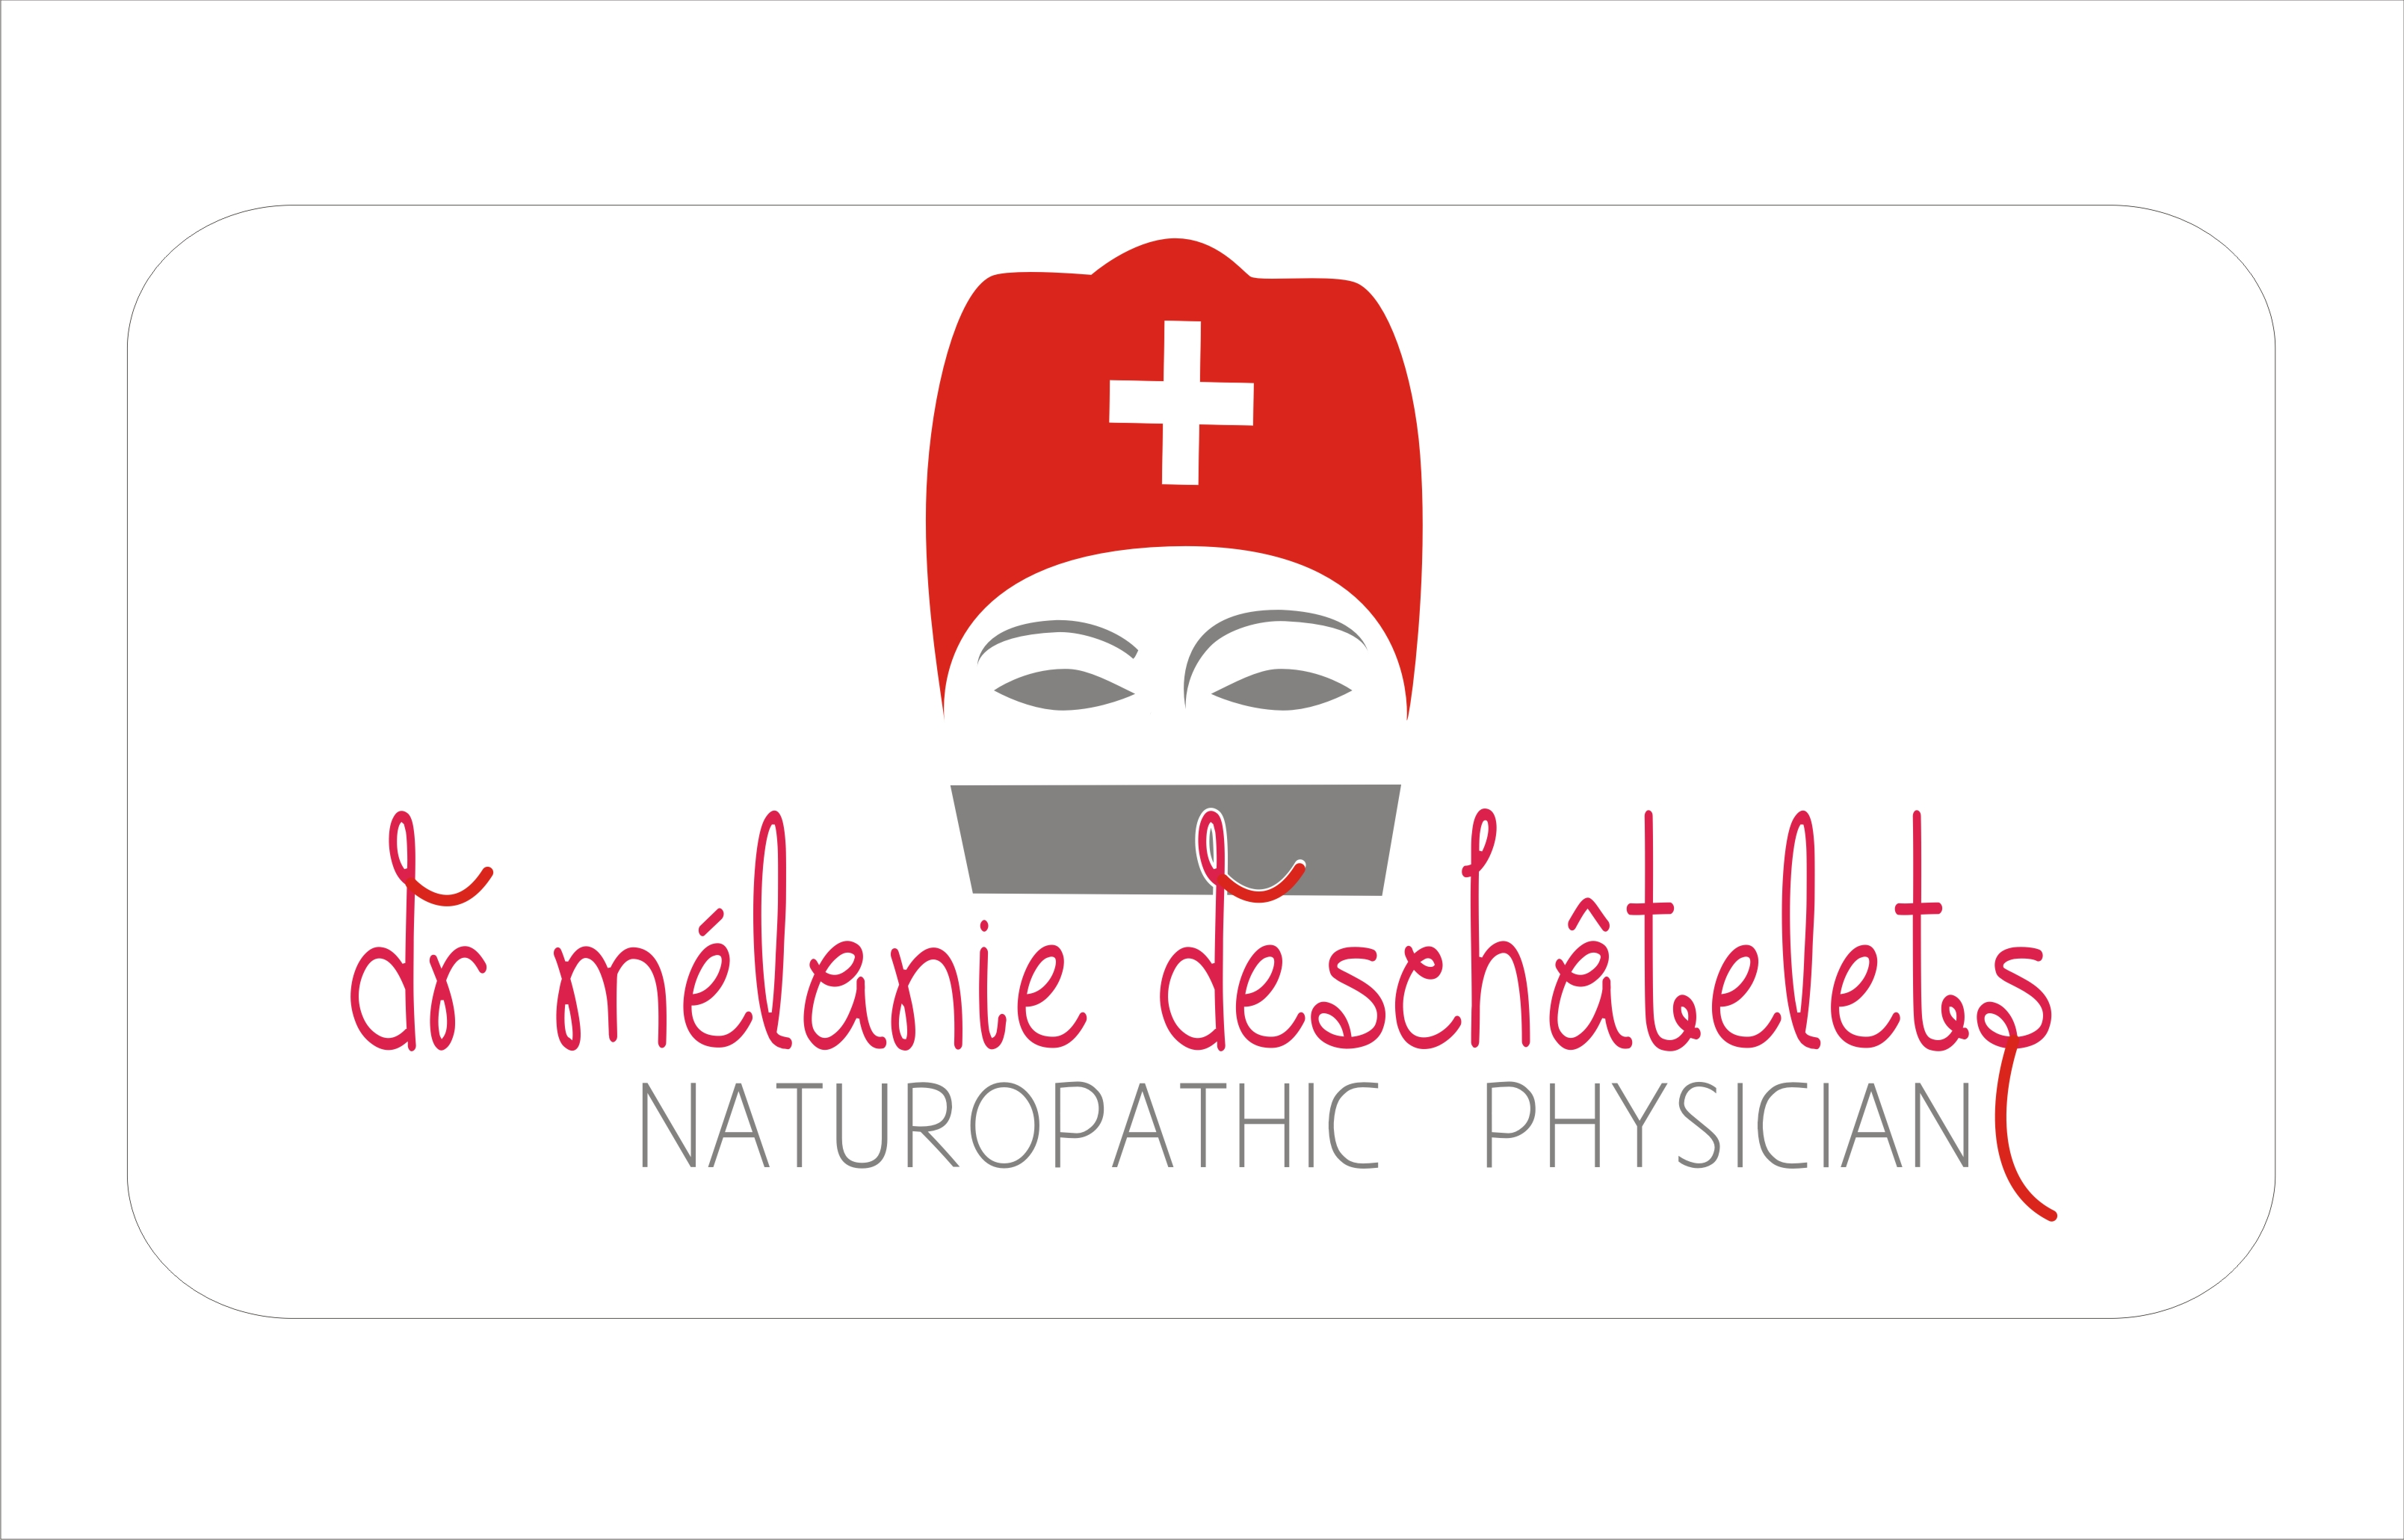 Logo Design by Sandip Kumar - Entry No. 205 in the Logo Design Contest Artistic Logo Design for Dr Mélanie DesChâtelets.